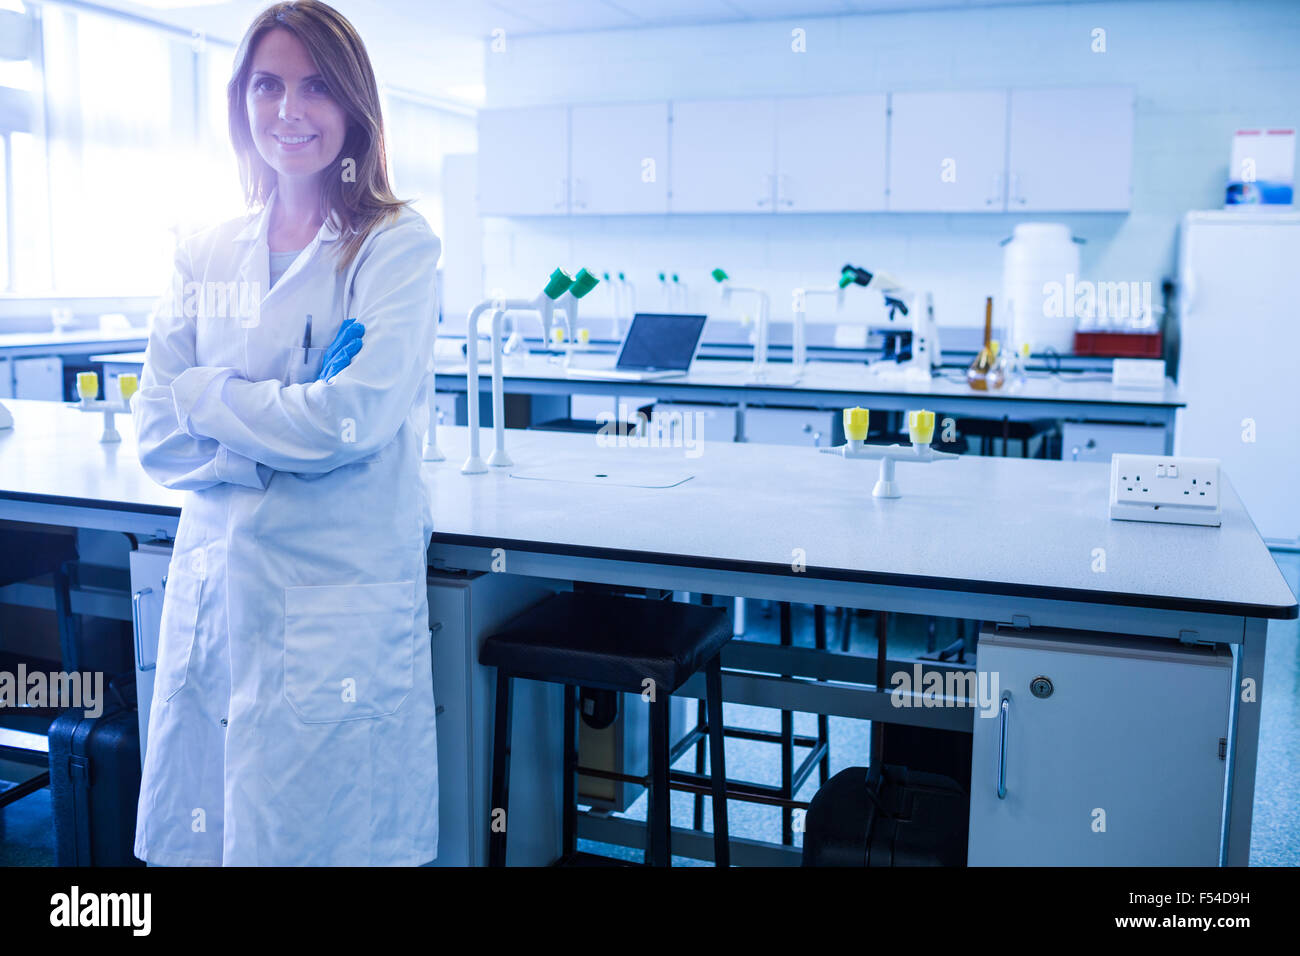 Scientist smiling at the camera in lab - Stock Image